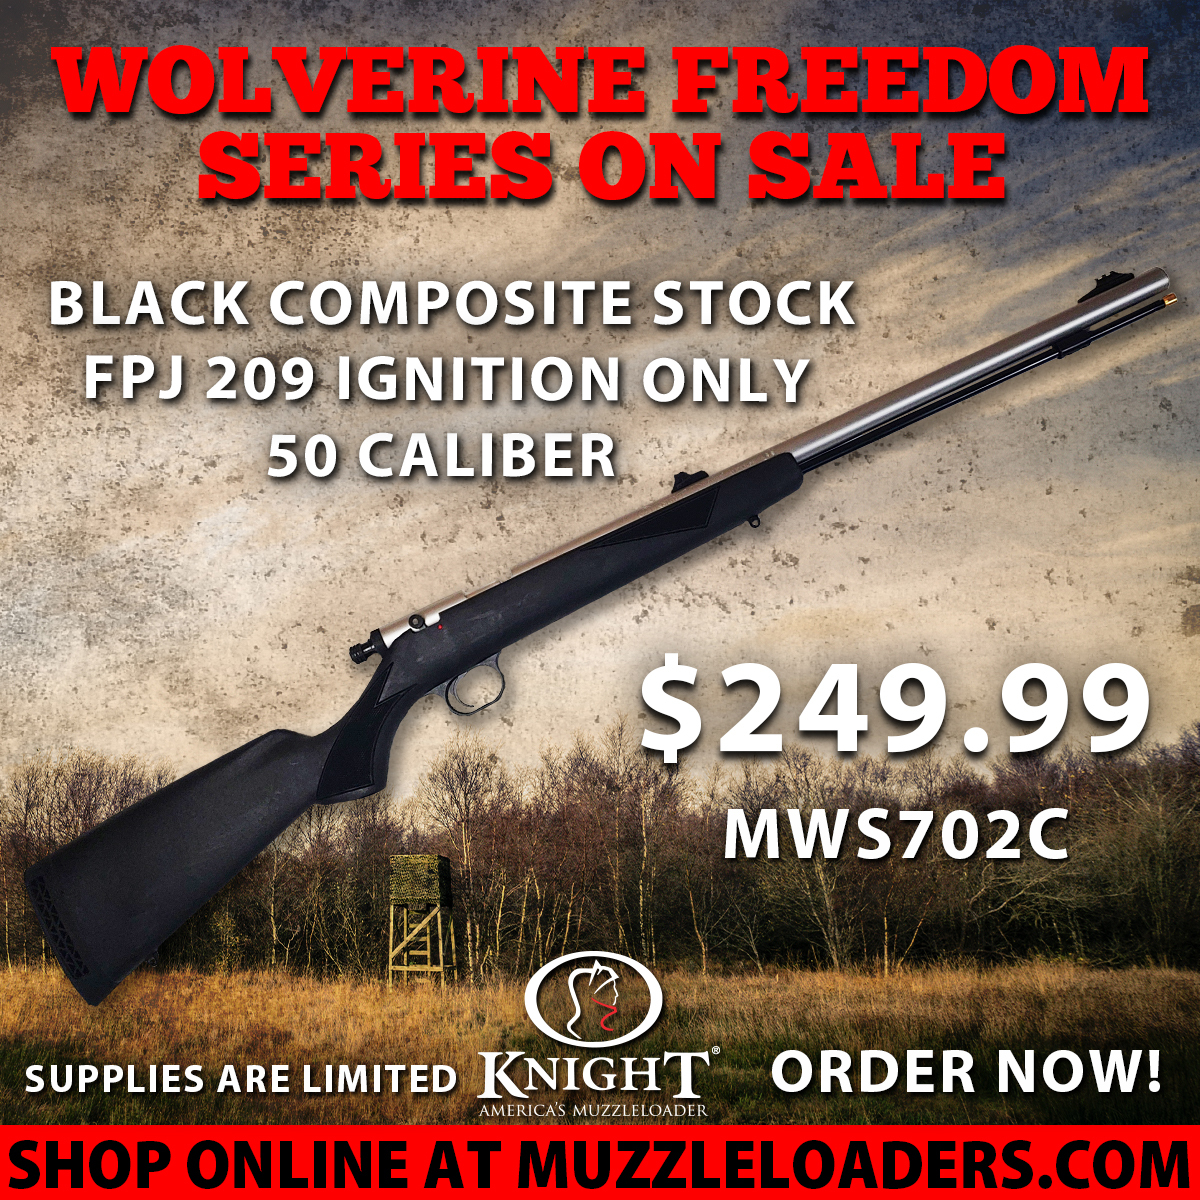 Knight-Wolverine-Freedom-Sale-Ad